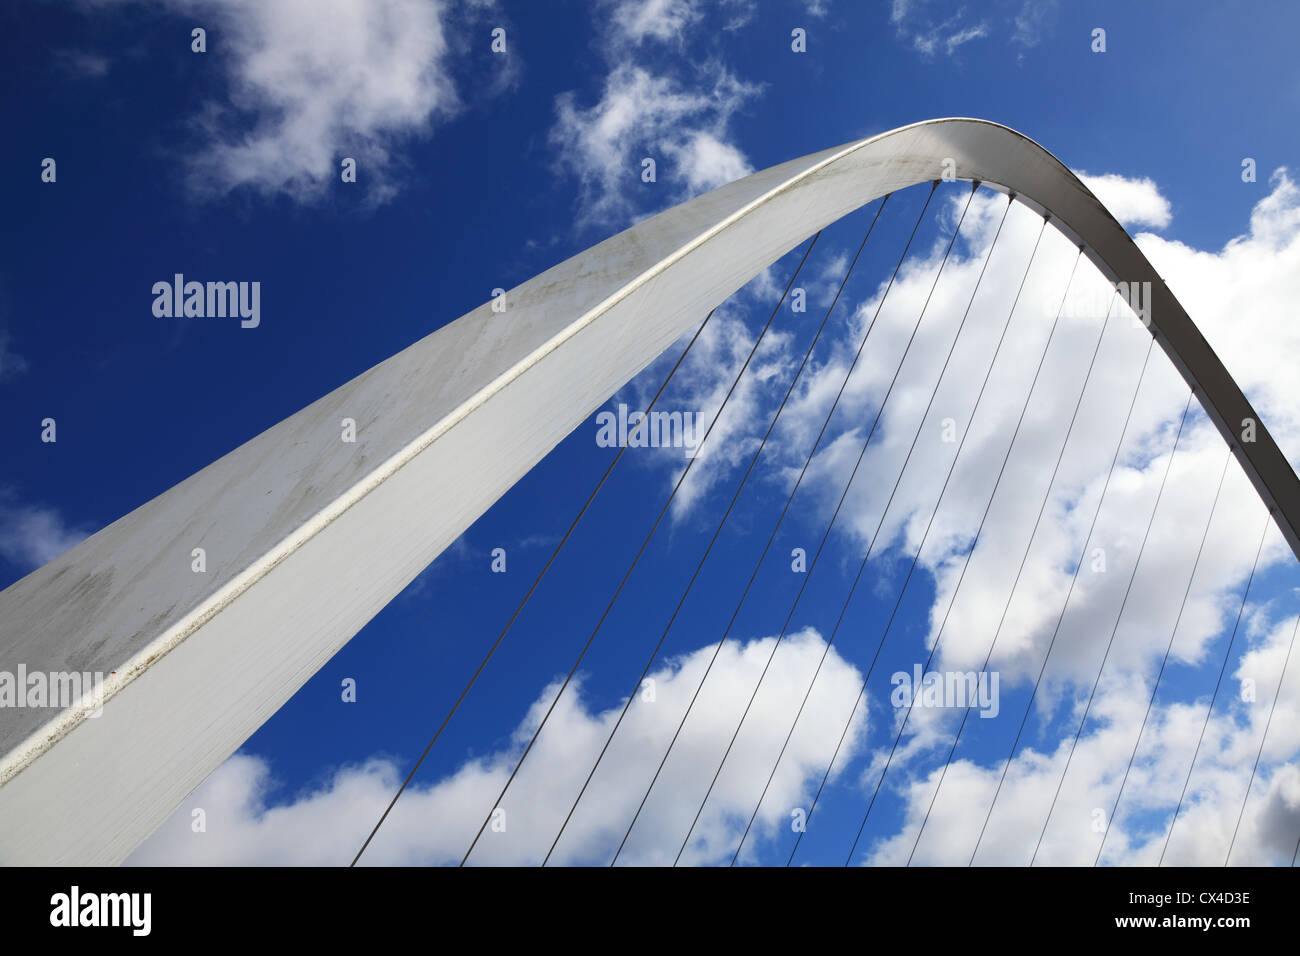 Detail or abstract view of the Gateshead Millennium bridge North East England UK - Stock Image